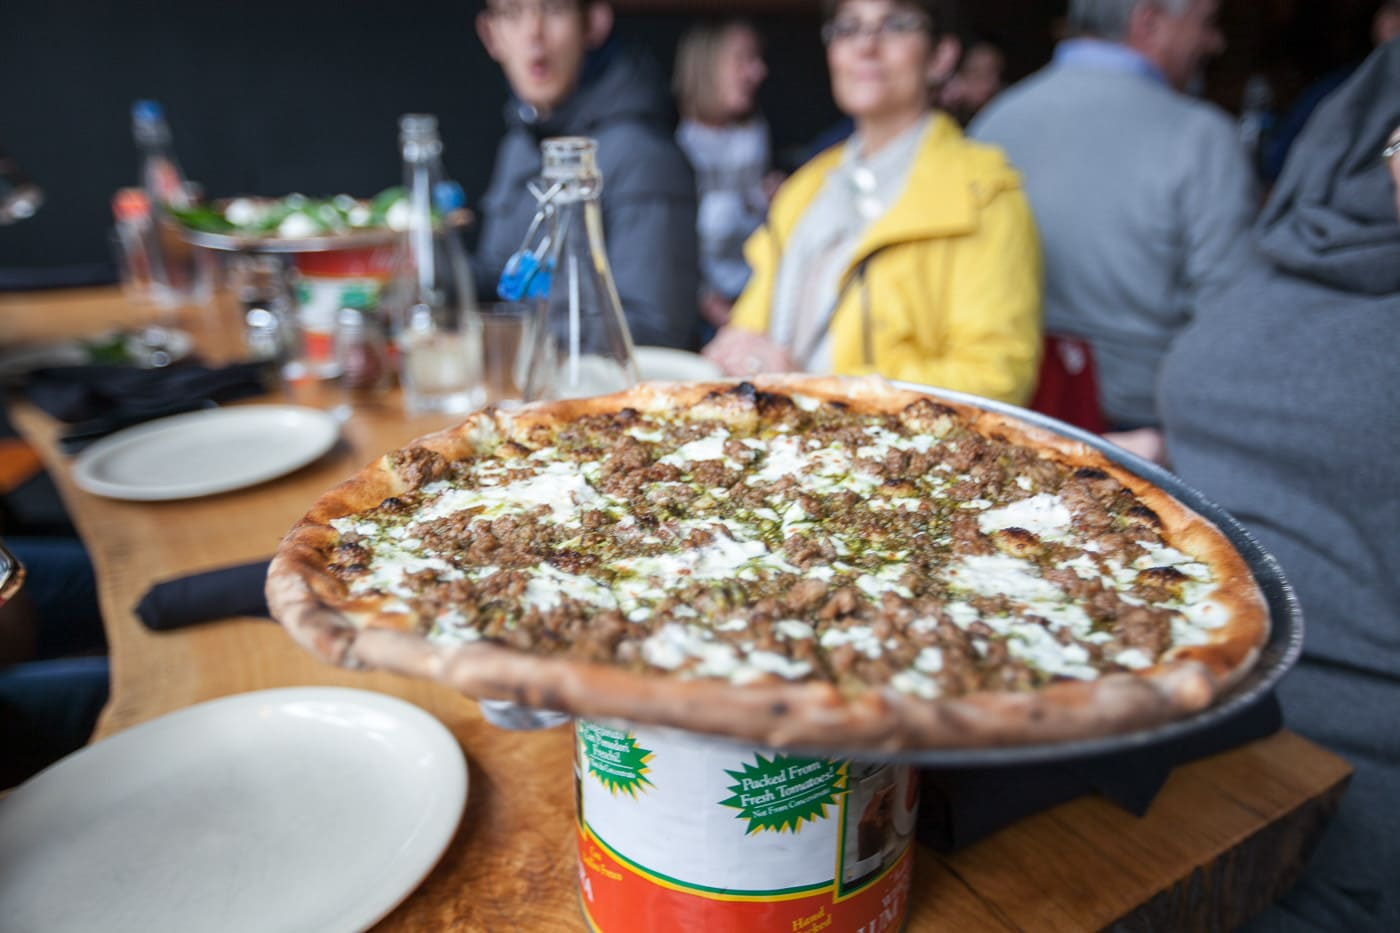 Pizza tour of Chicago with Chicago Pizza Tours - Pistachio ​Pesto ​pizza with pistachio ​pesto, ​berkshire ​sausage, ​burrata, and ​honey at Coalfire Pizza in Chicago